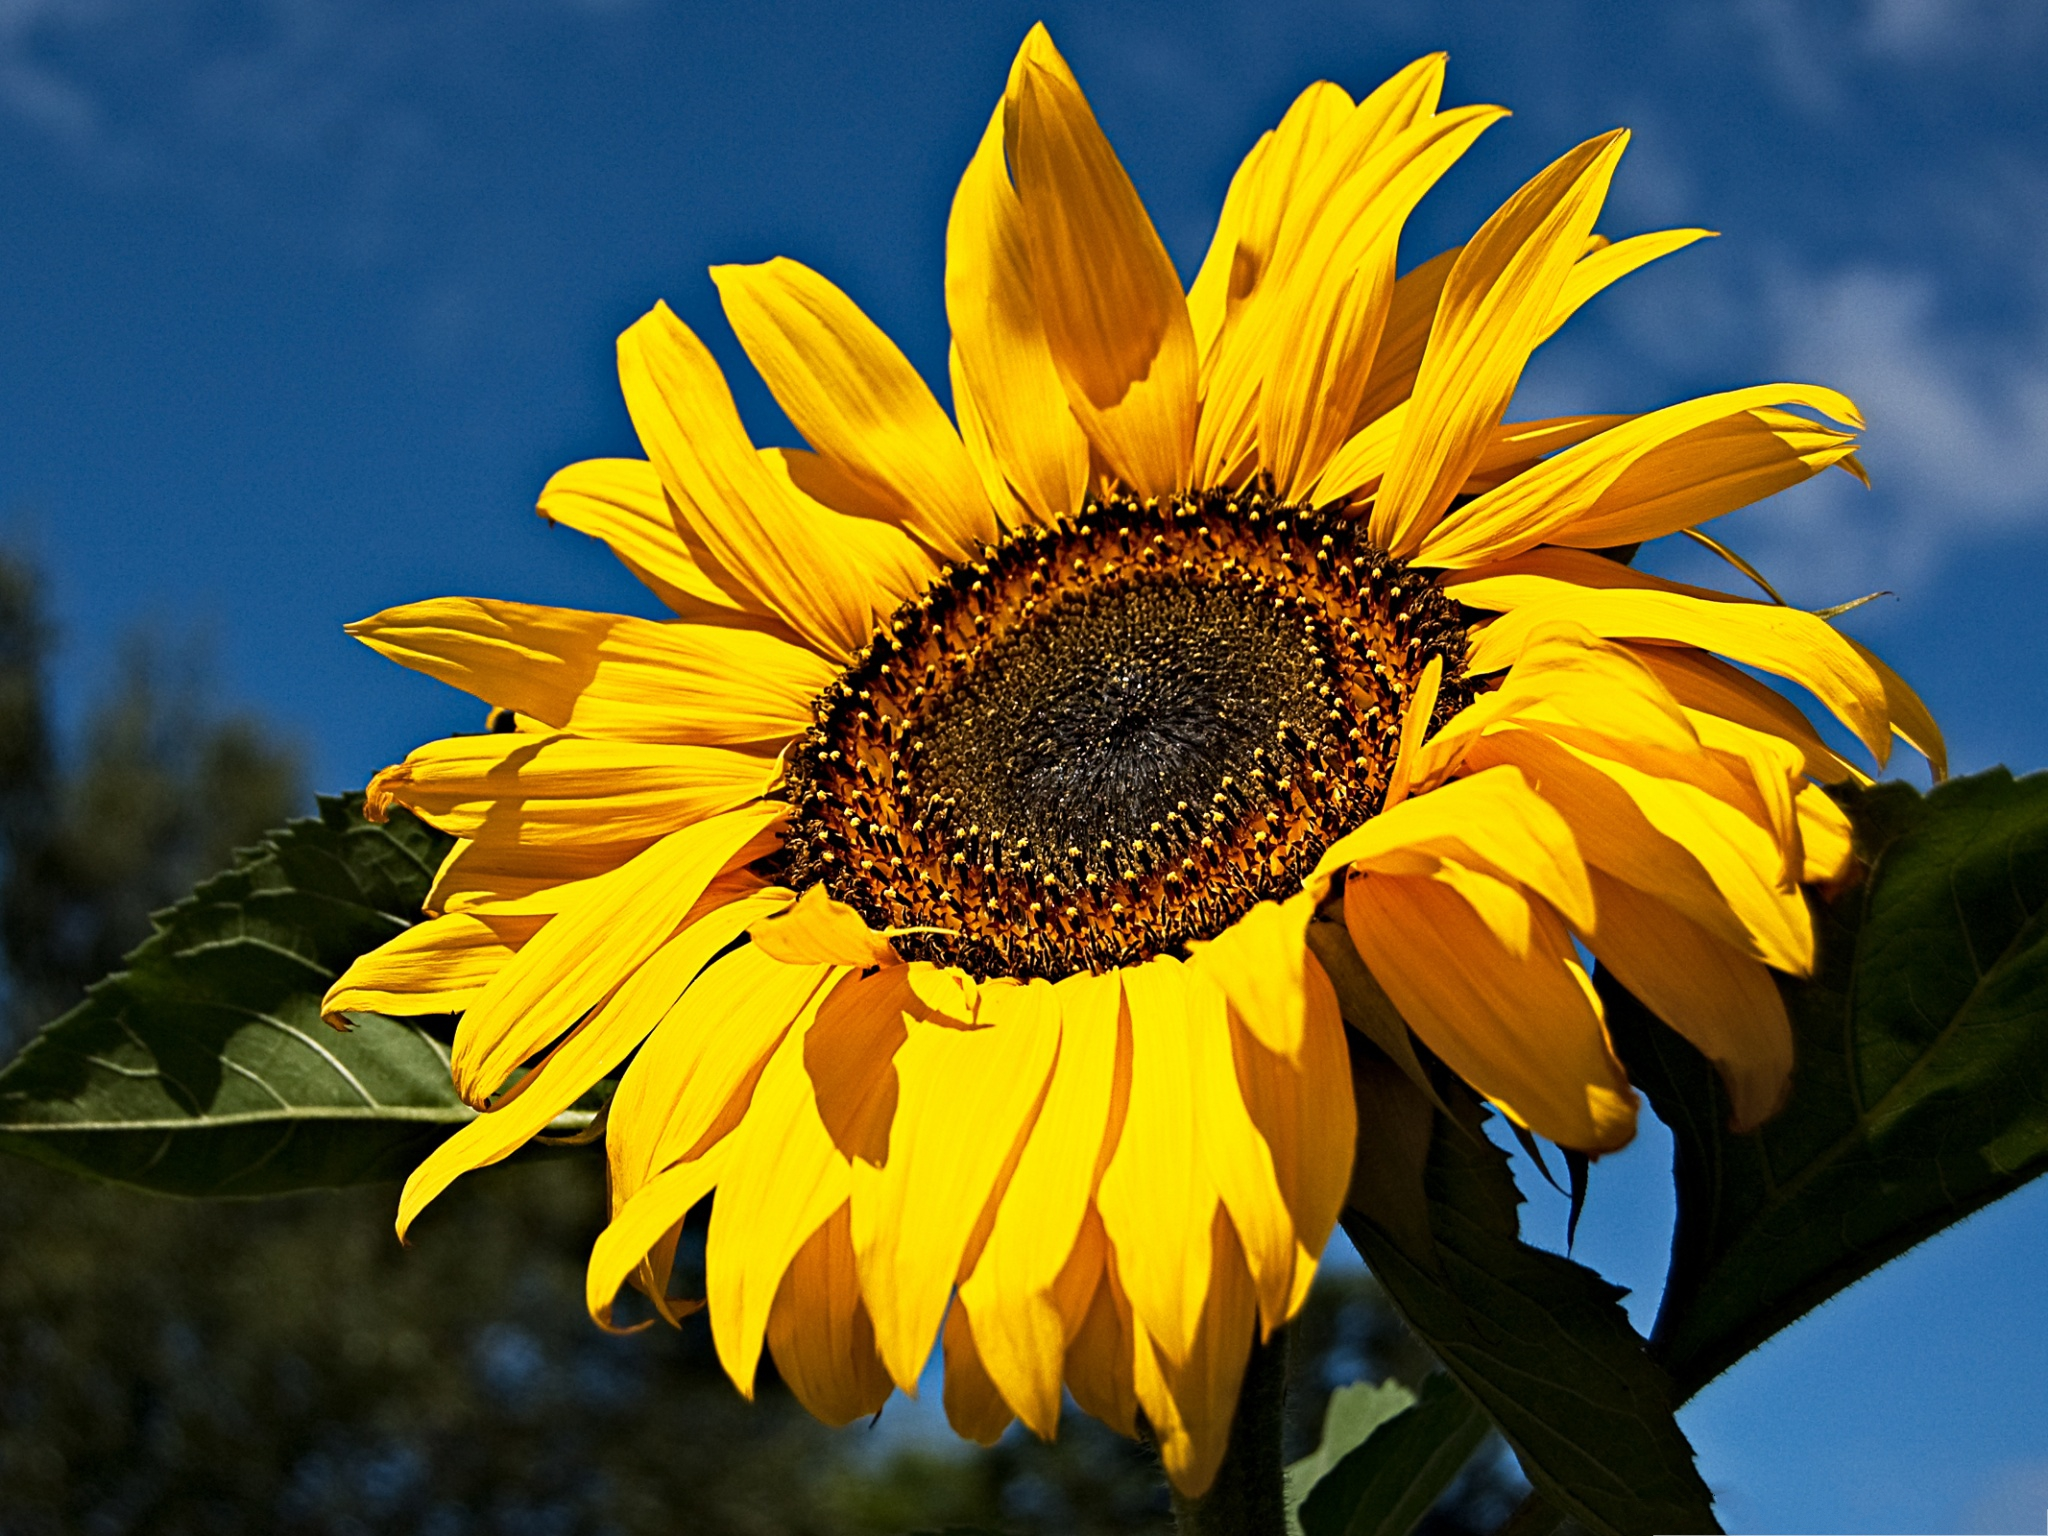 click to free download the wallpaper--Golden Sunflower Pics, Blooming Sunflower Under the Blue Sky 2048X1536 free wallpaper download